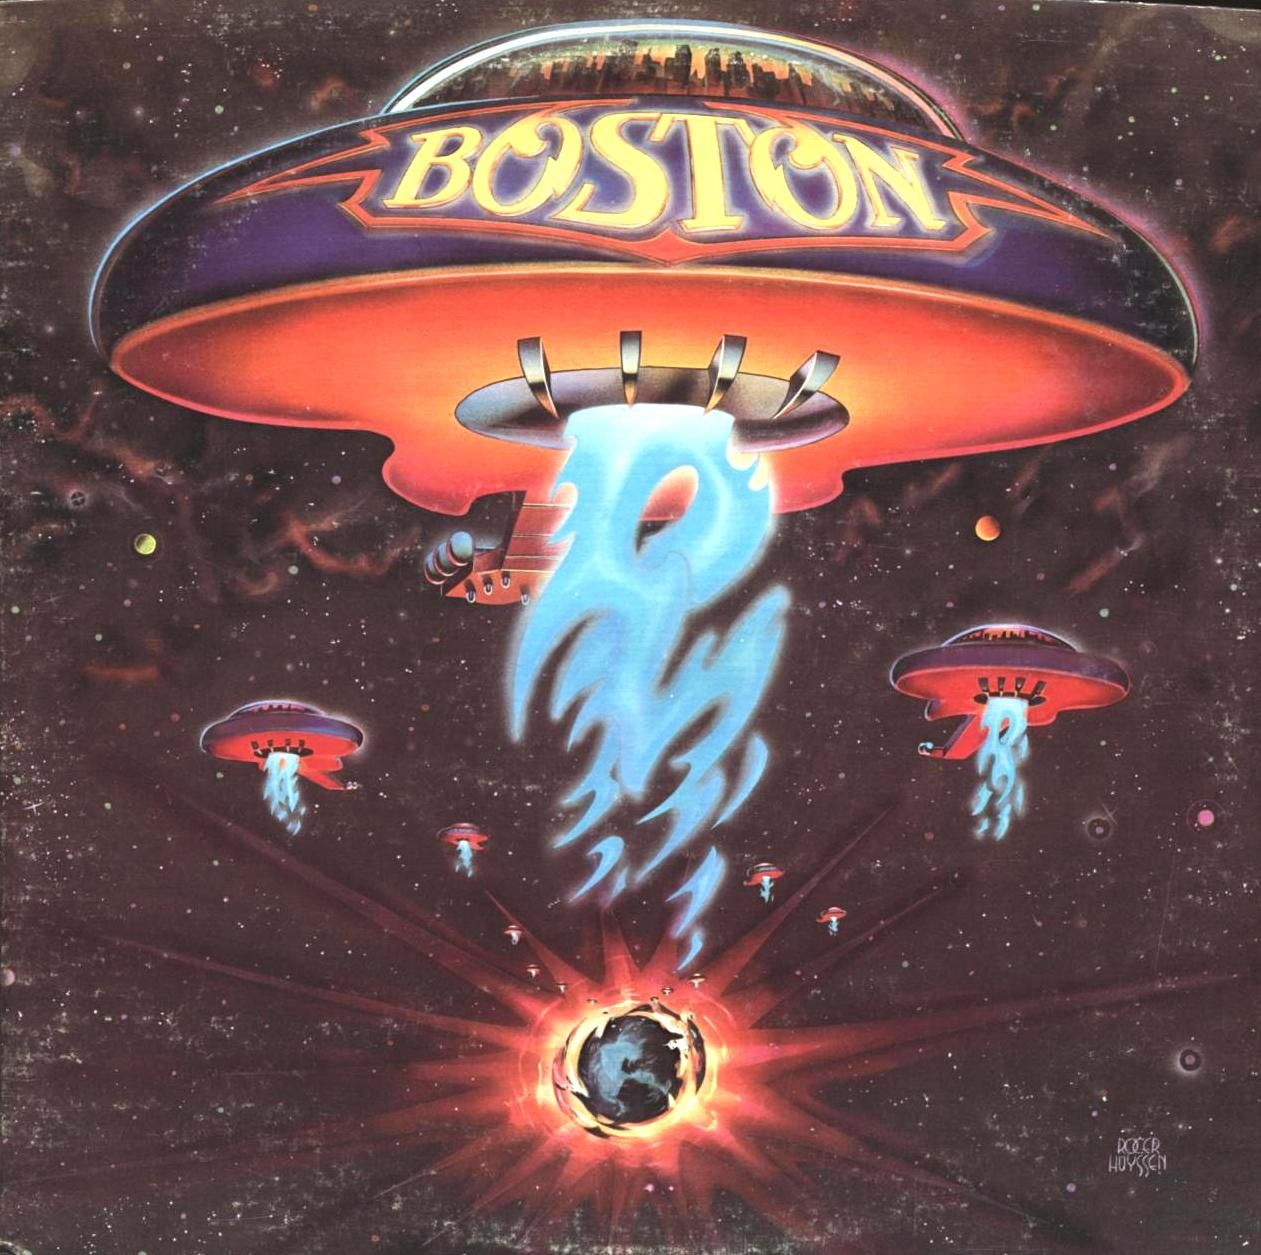 Photo of Boston ist das Debütalbum der amerikanischen Rockband Boston, rele …